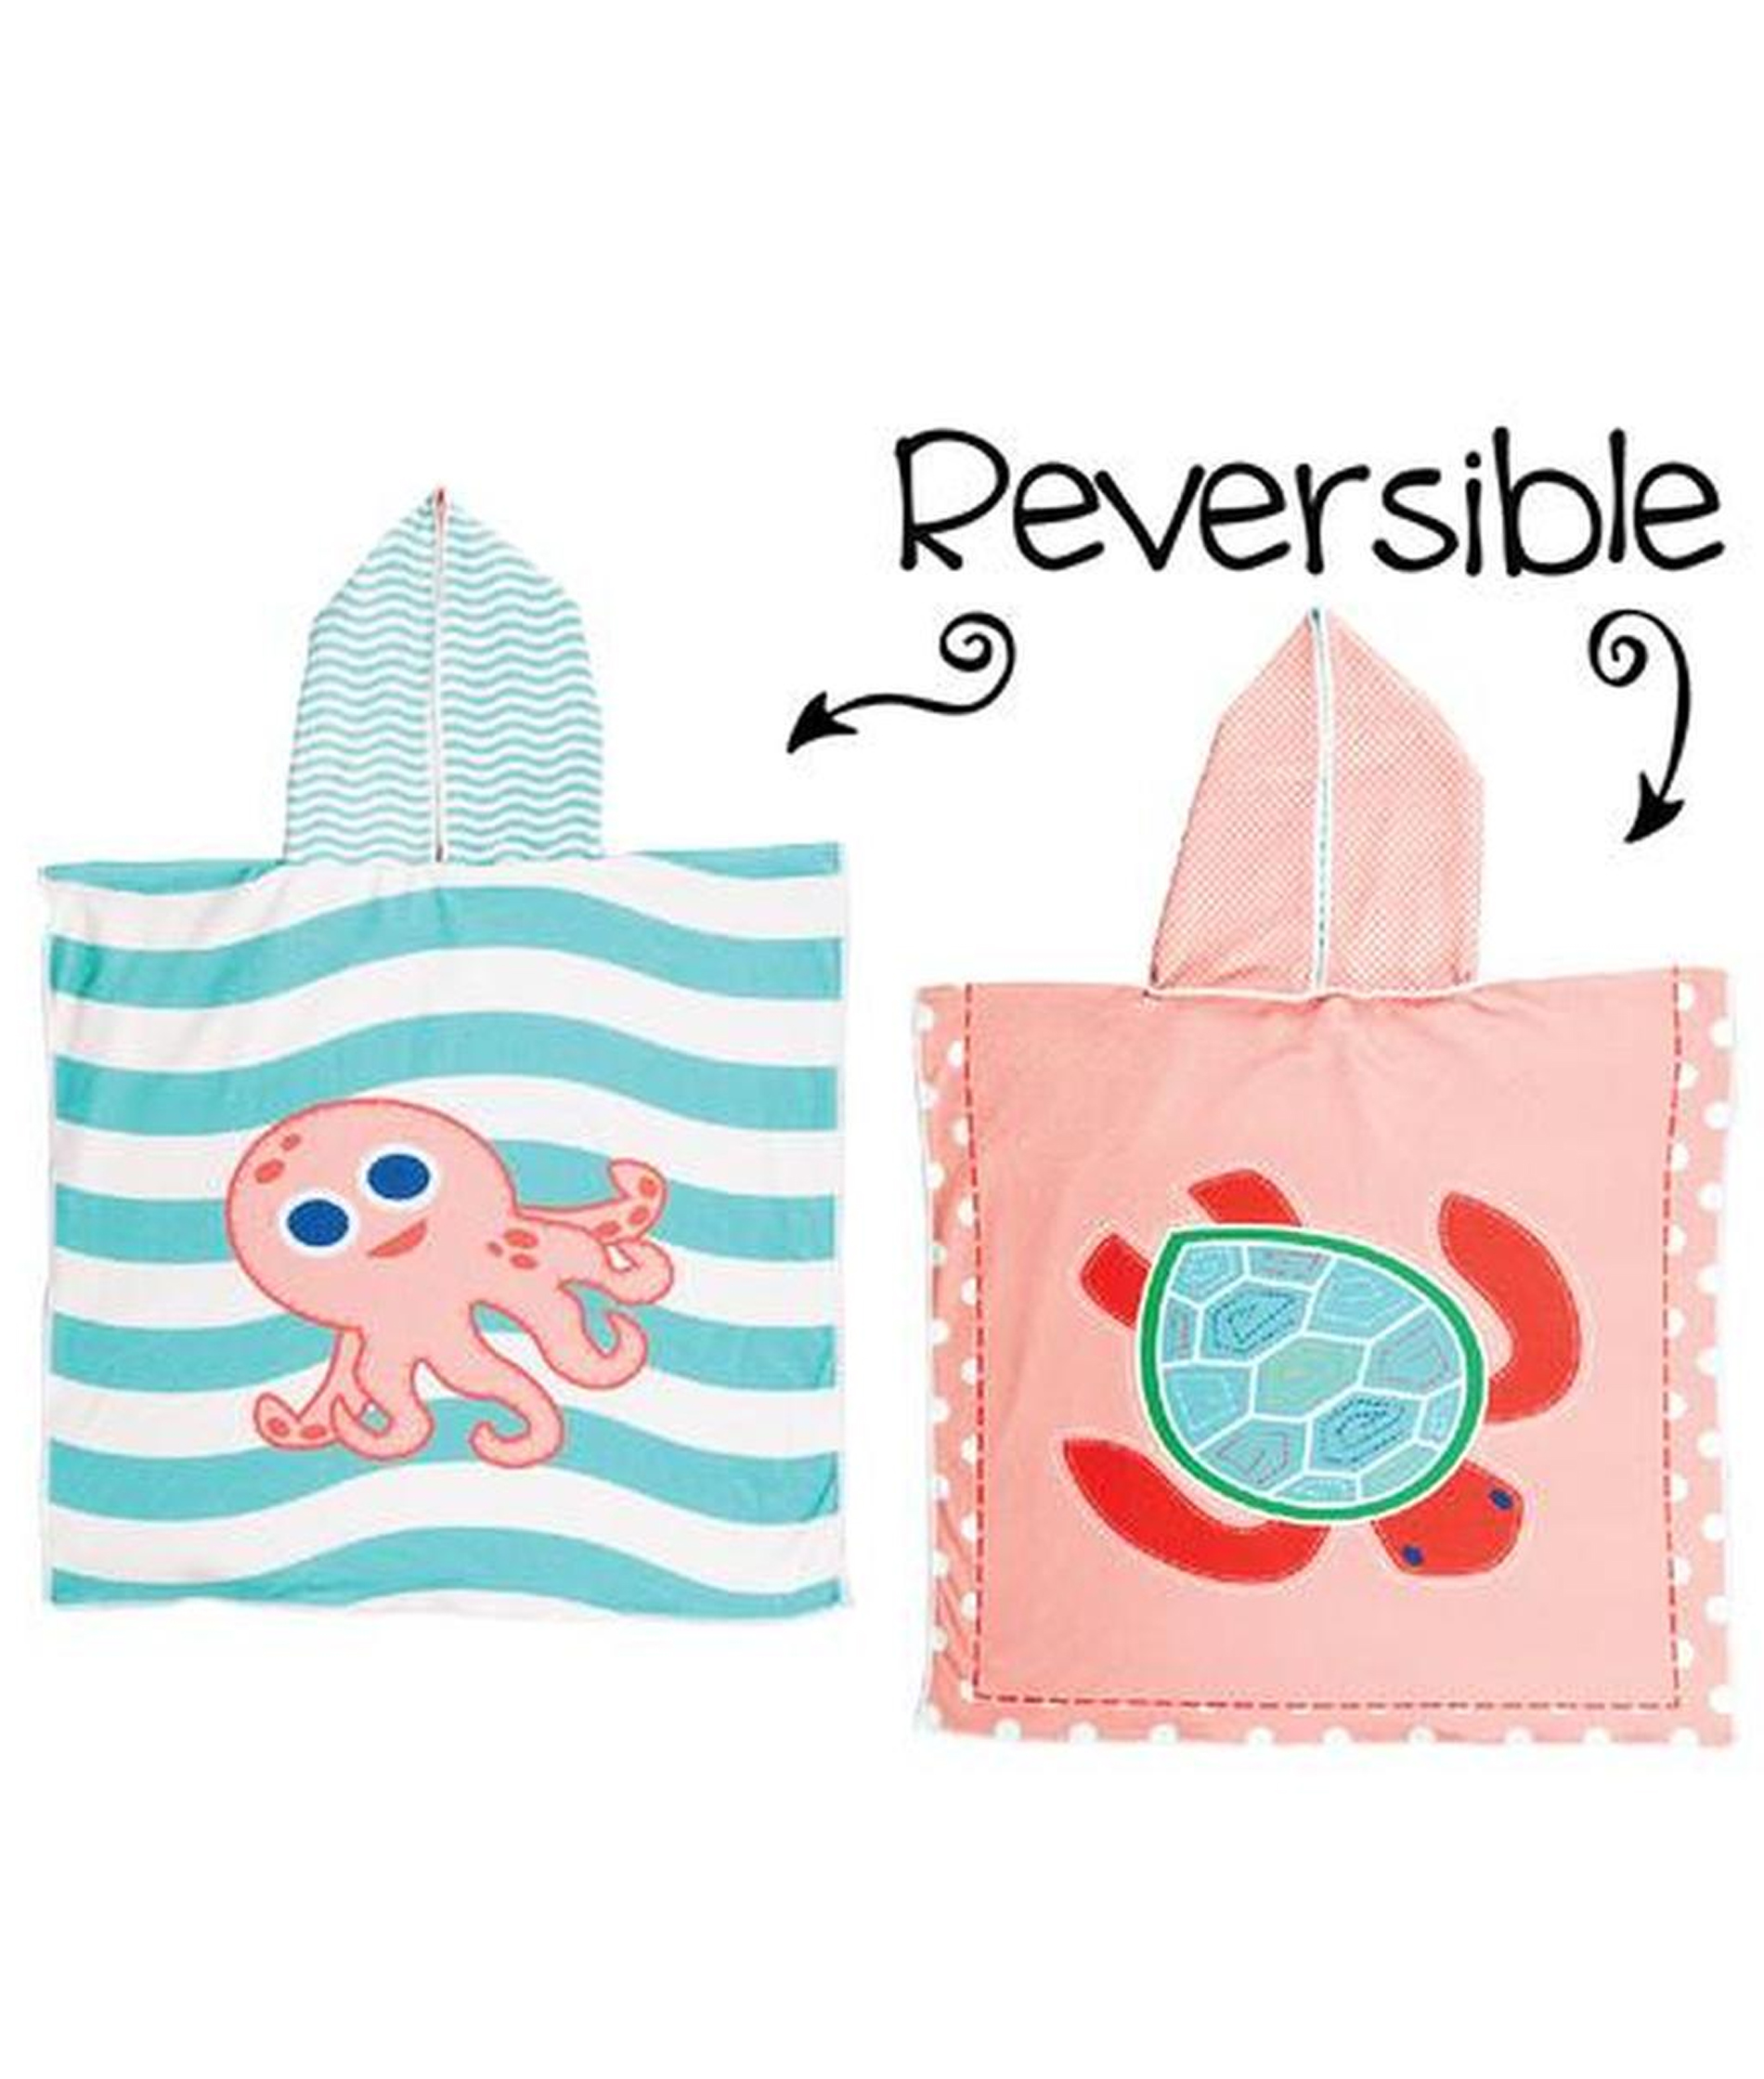 Flapjack Kids Reversible Cover-Ups - Sea Turtle/Pink Octopus